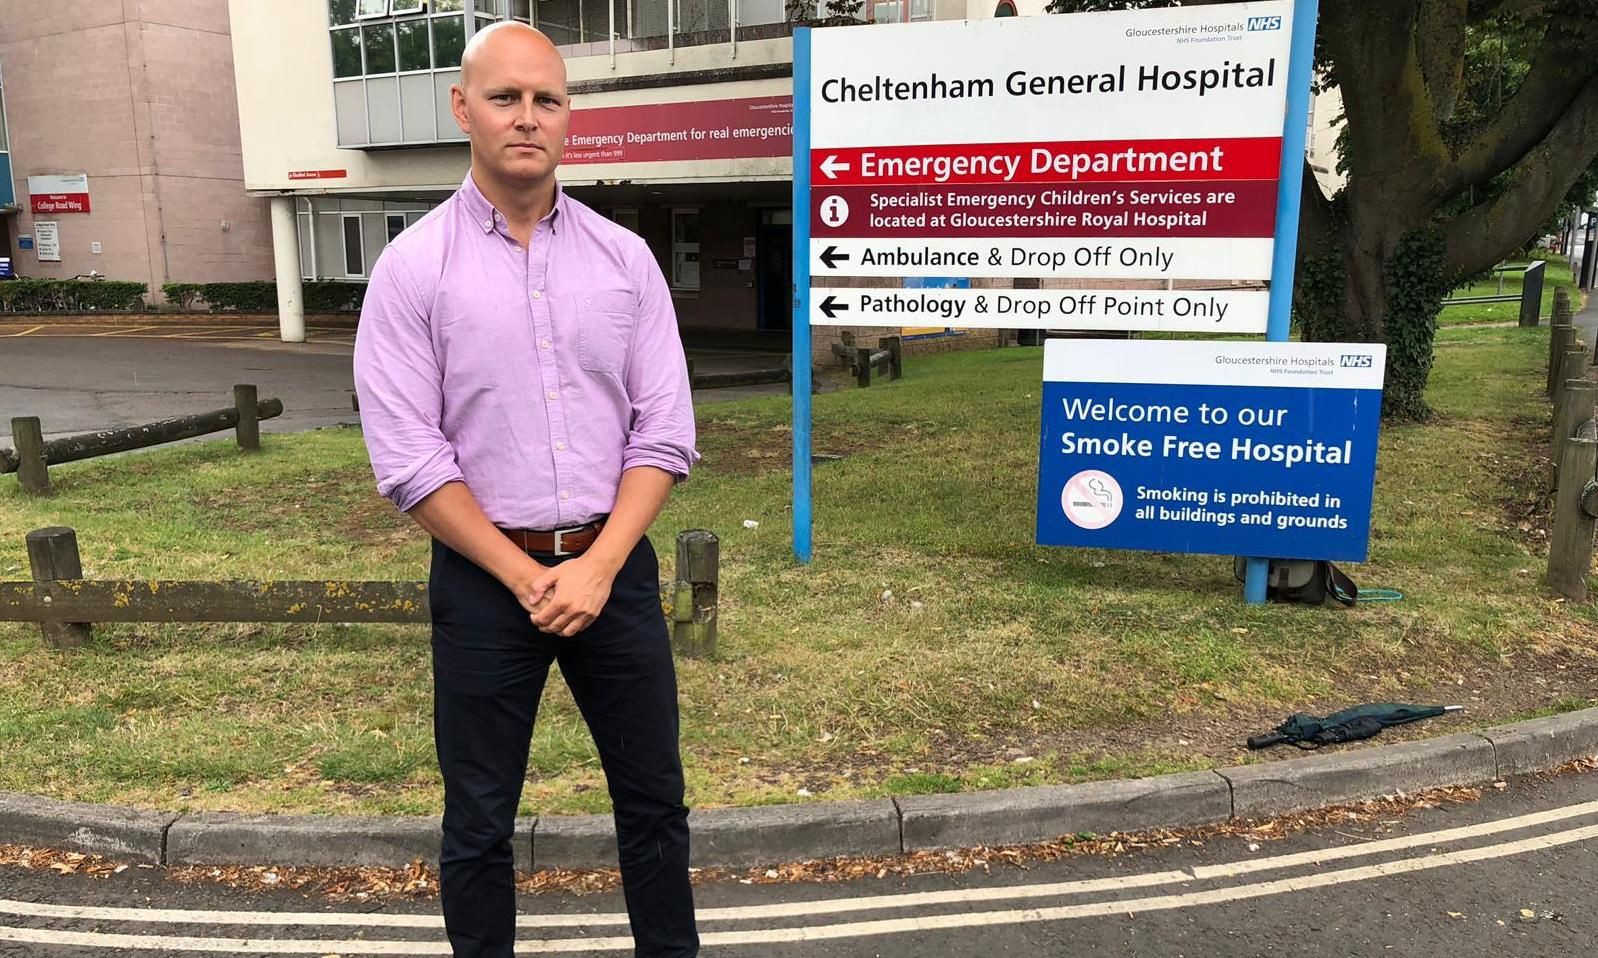 Six questions we need answered before we can say whether Cheltenham General's A&E is actually safe